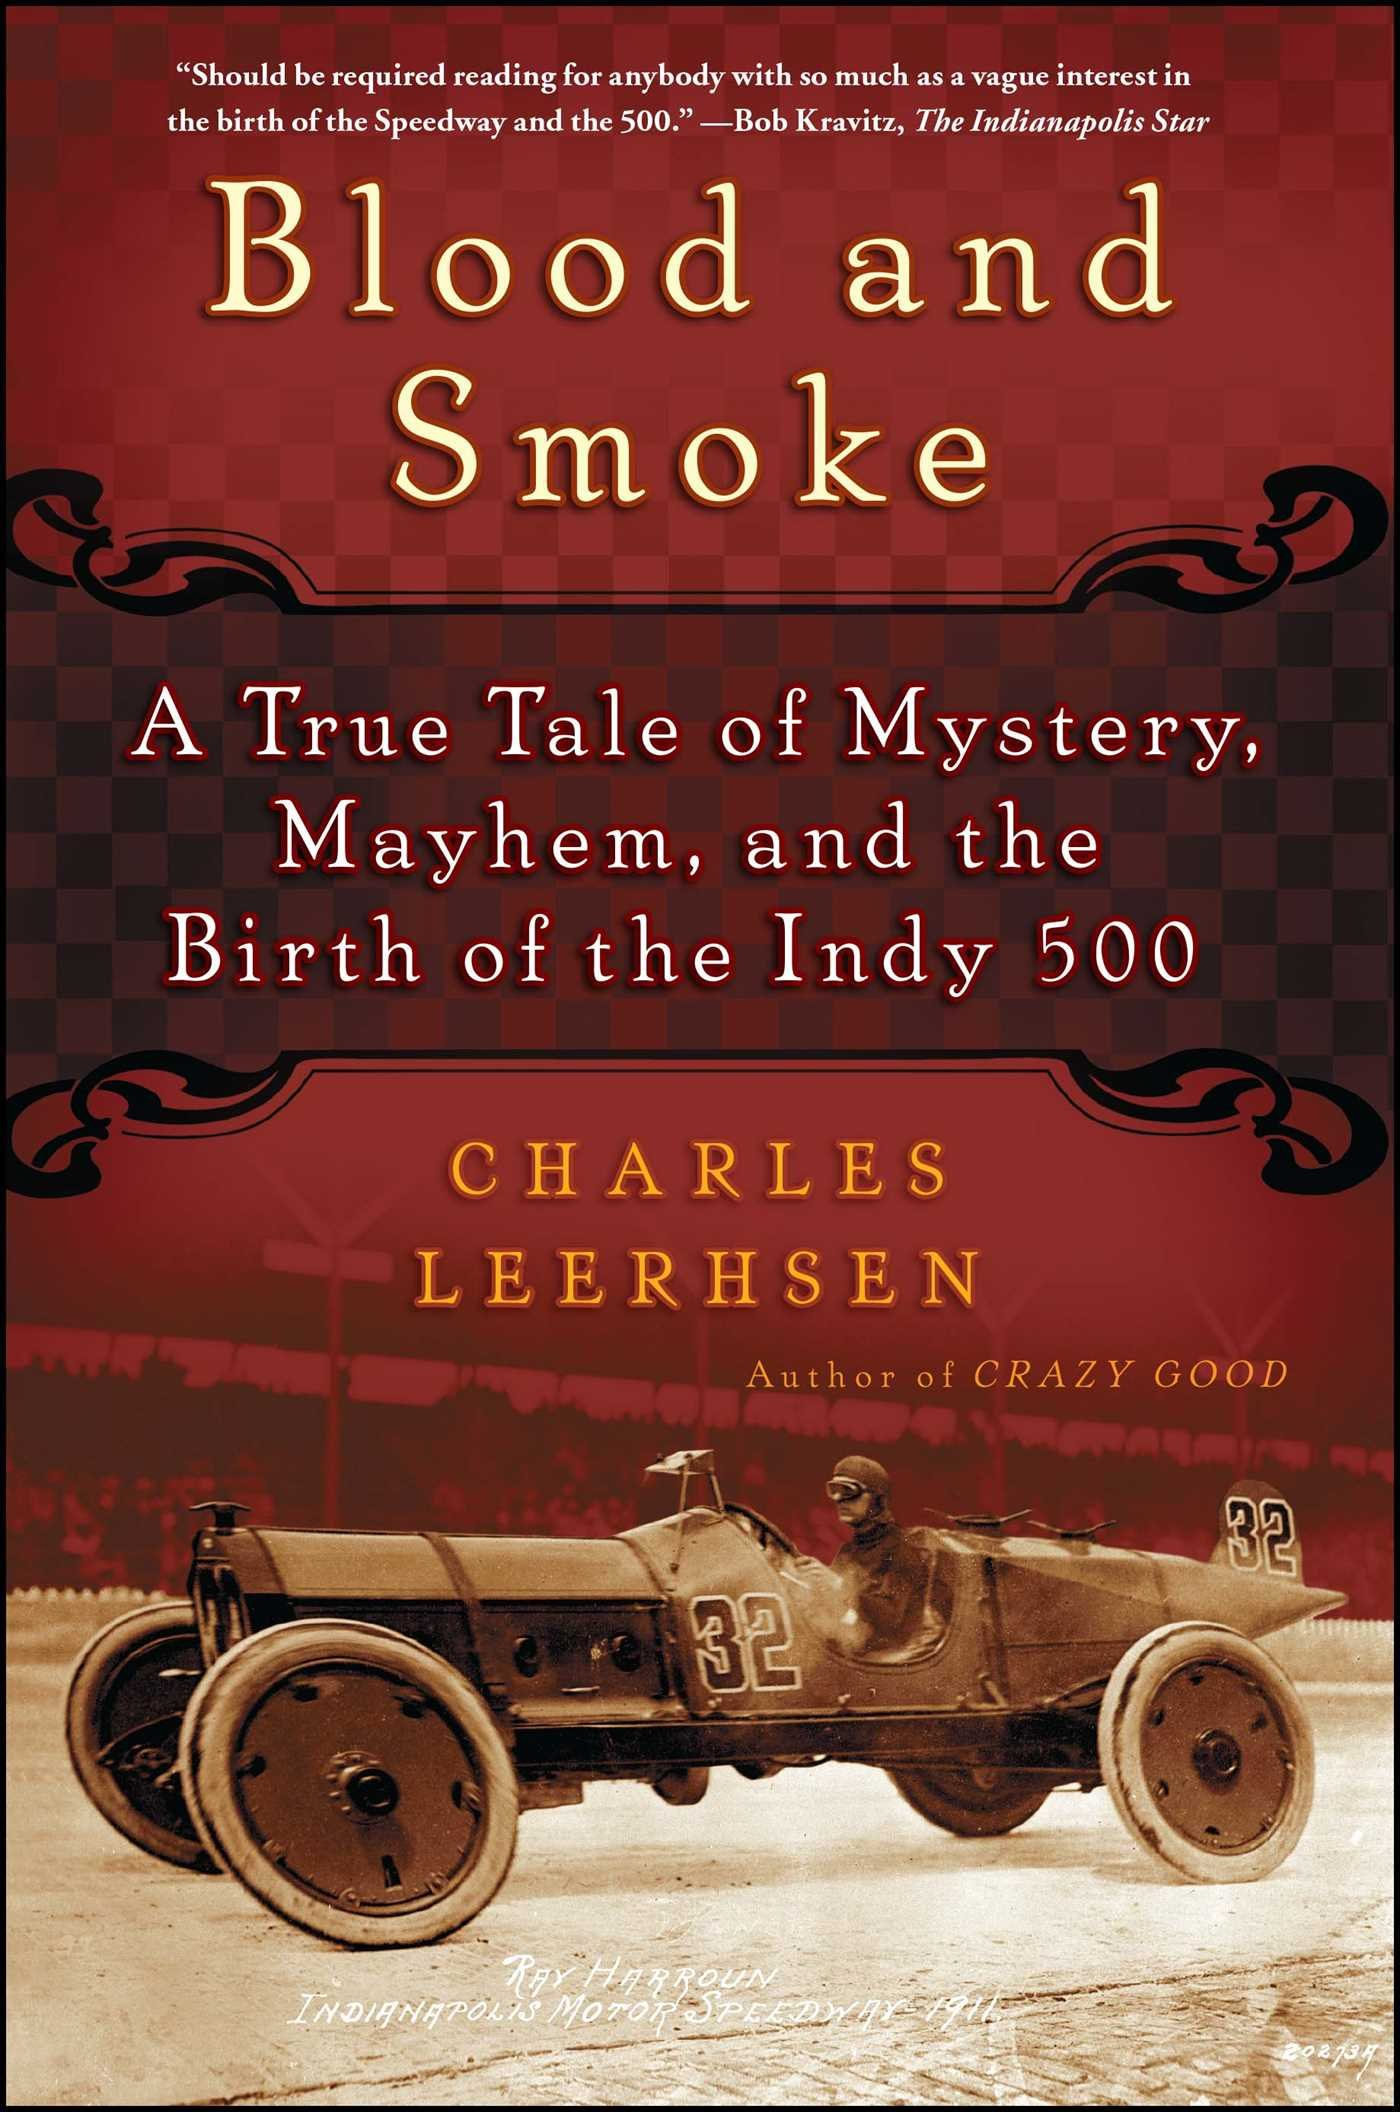 Image OfBlood And Smoke: A True Tale Of Mystery, Mayhem And The Birth Of The Indy 500